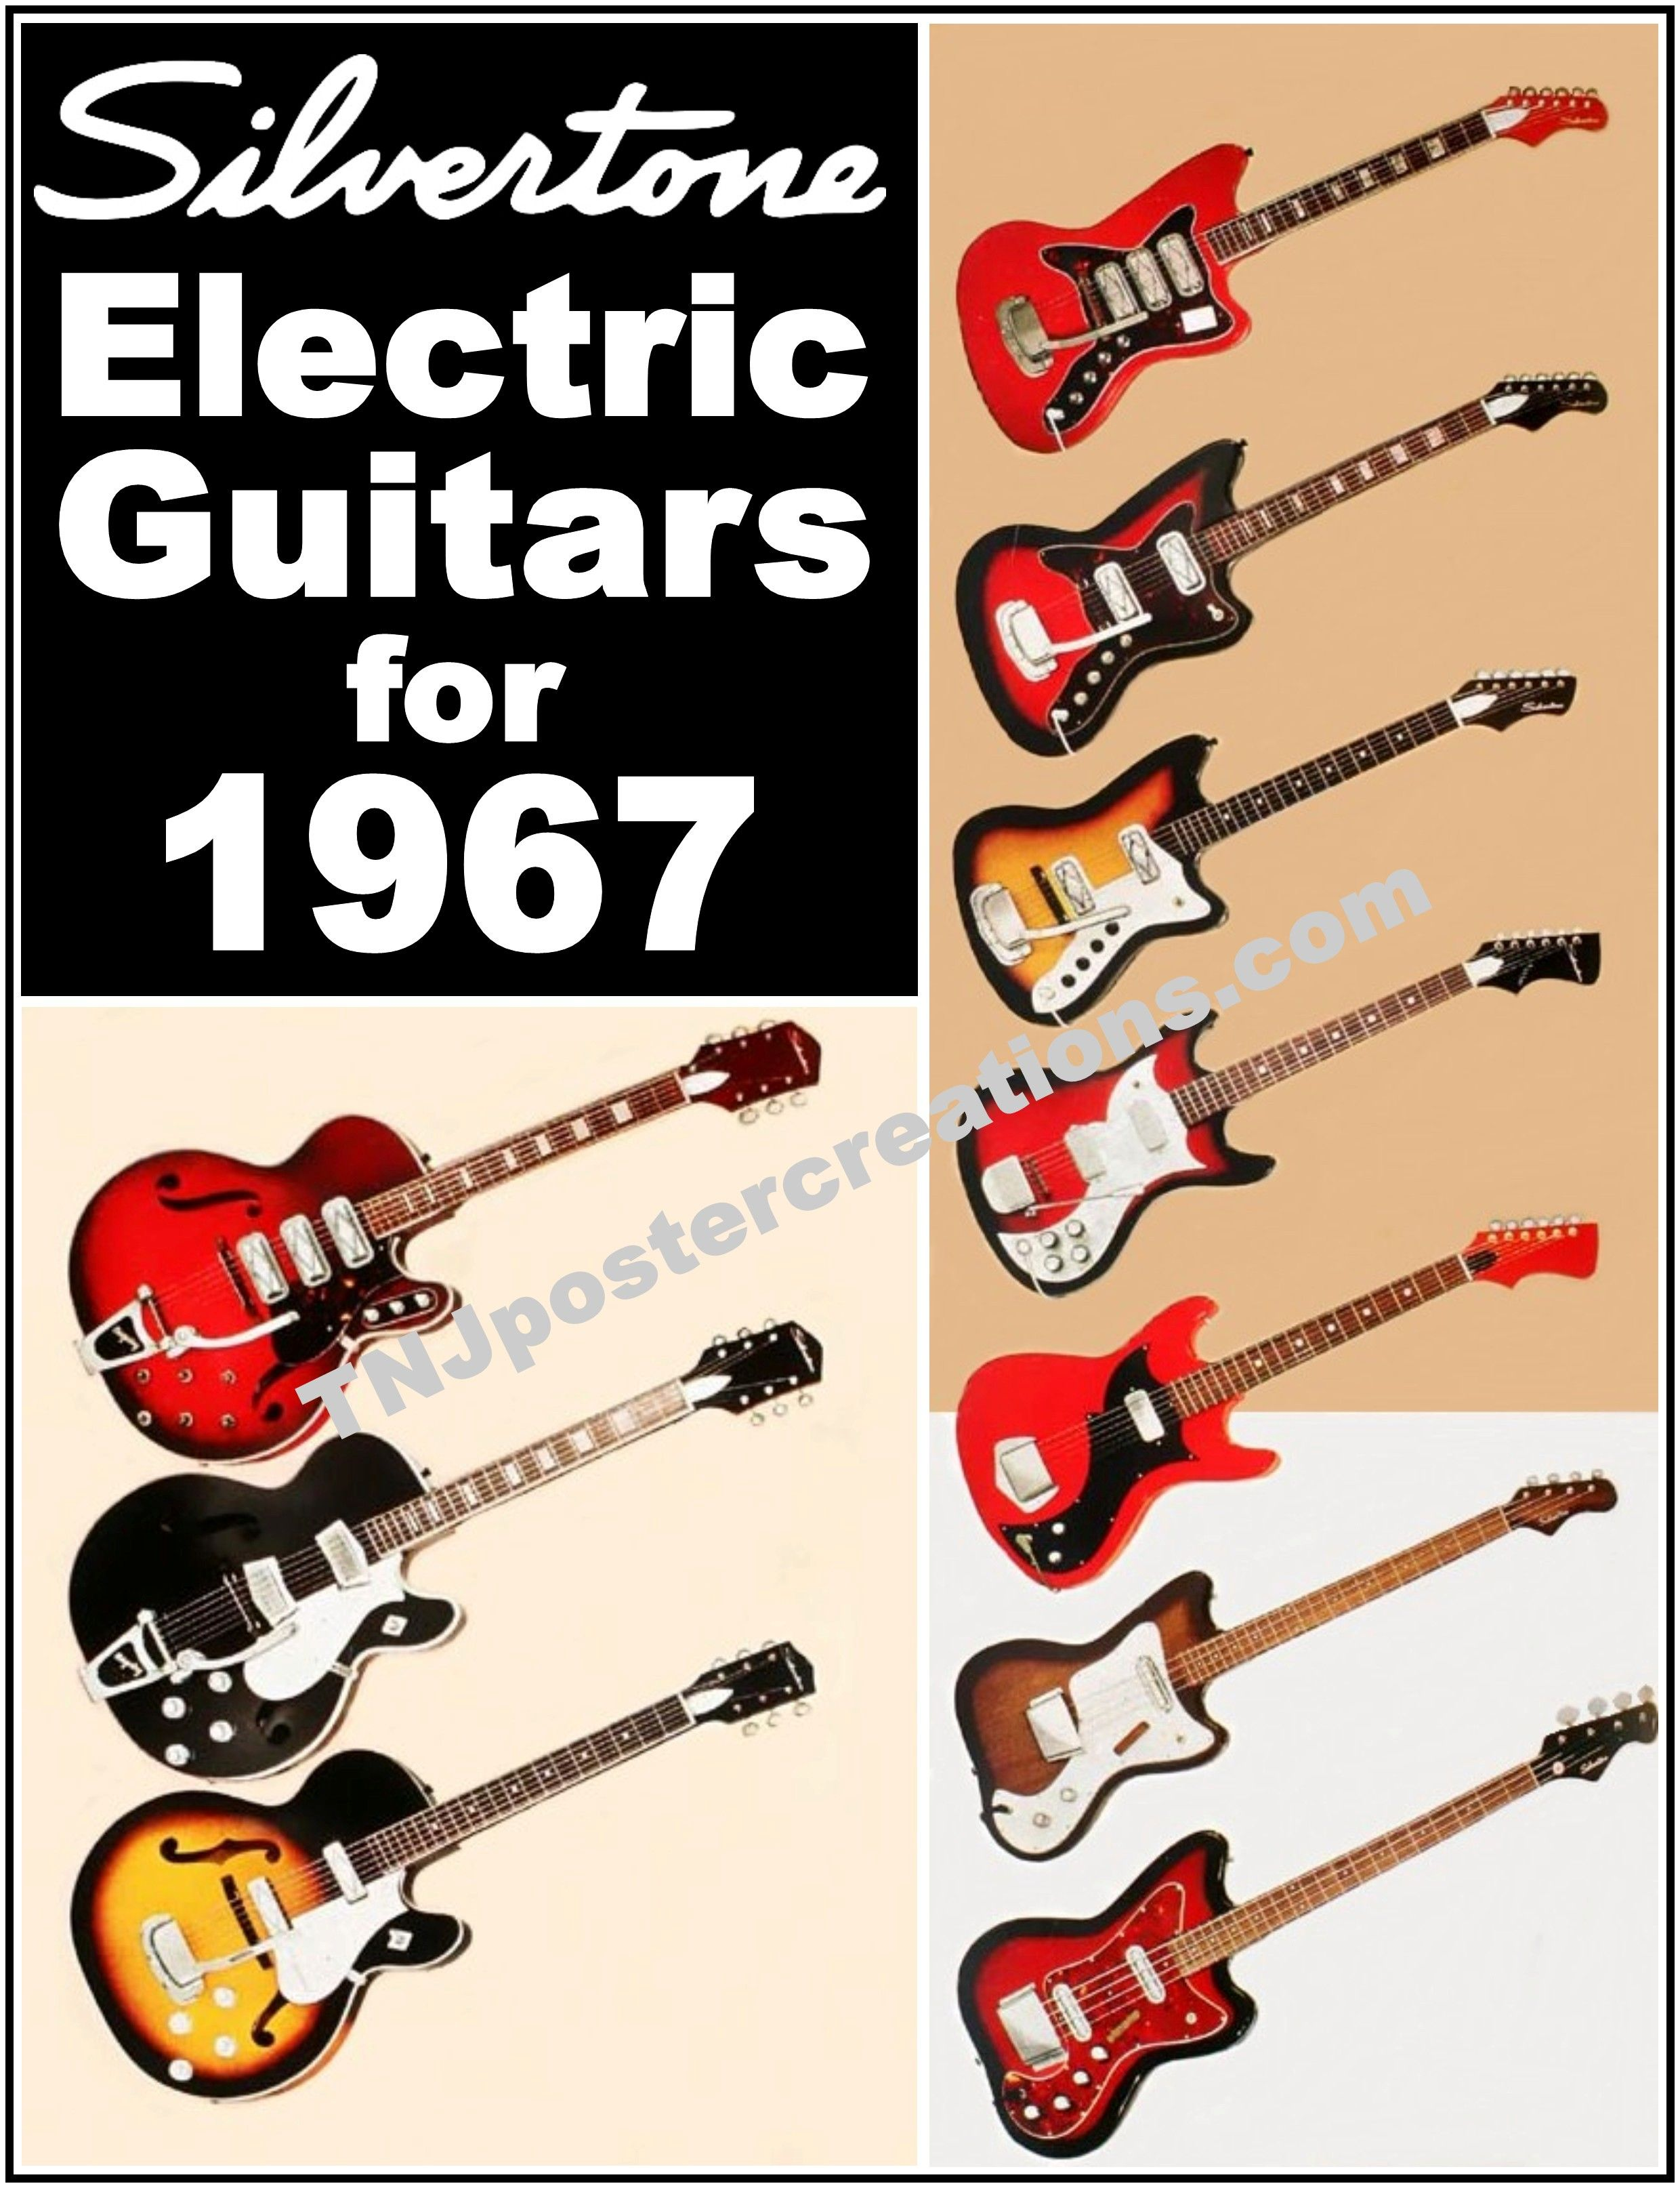 Vintage 1967 silvertone guitars ad berry brothers acoustic 1967 silvertone electric guitars promotional poster hollow solid body bass by mygenerationshop on etsy asfbconference2016 Choice Image